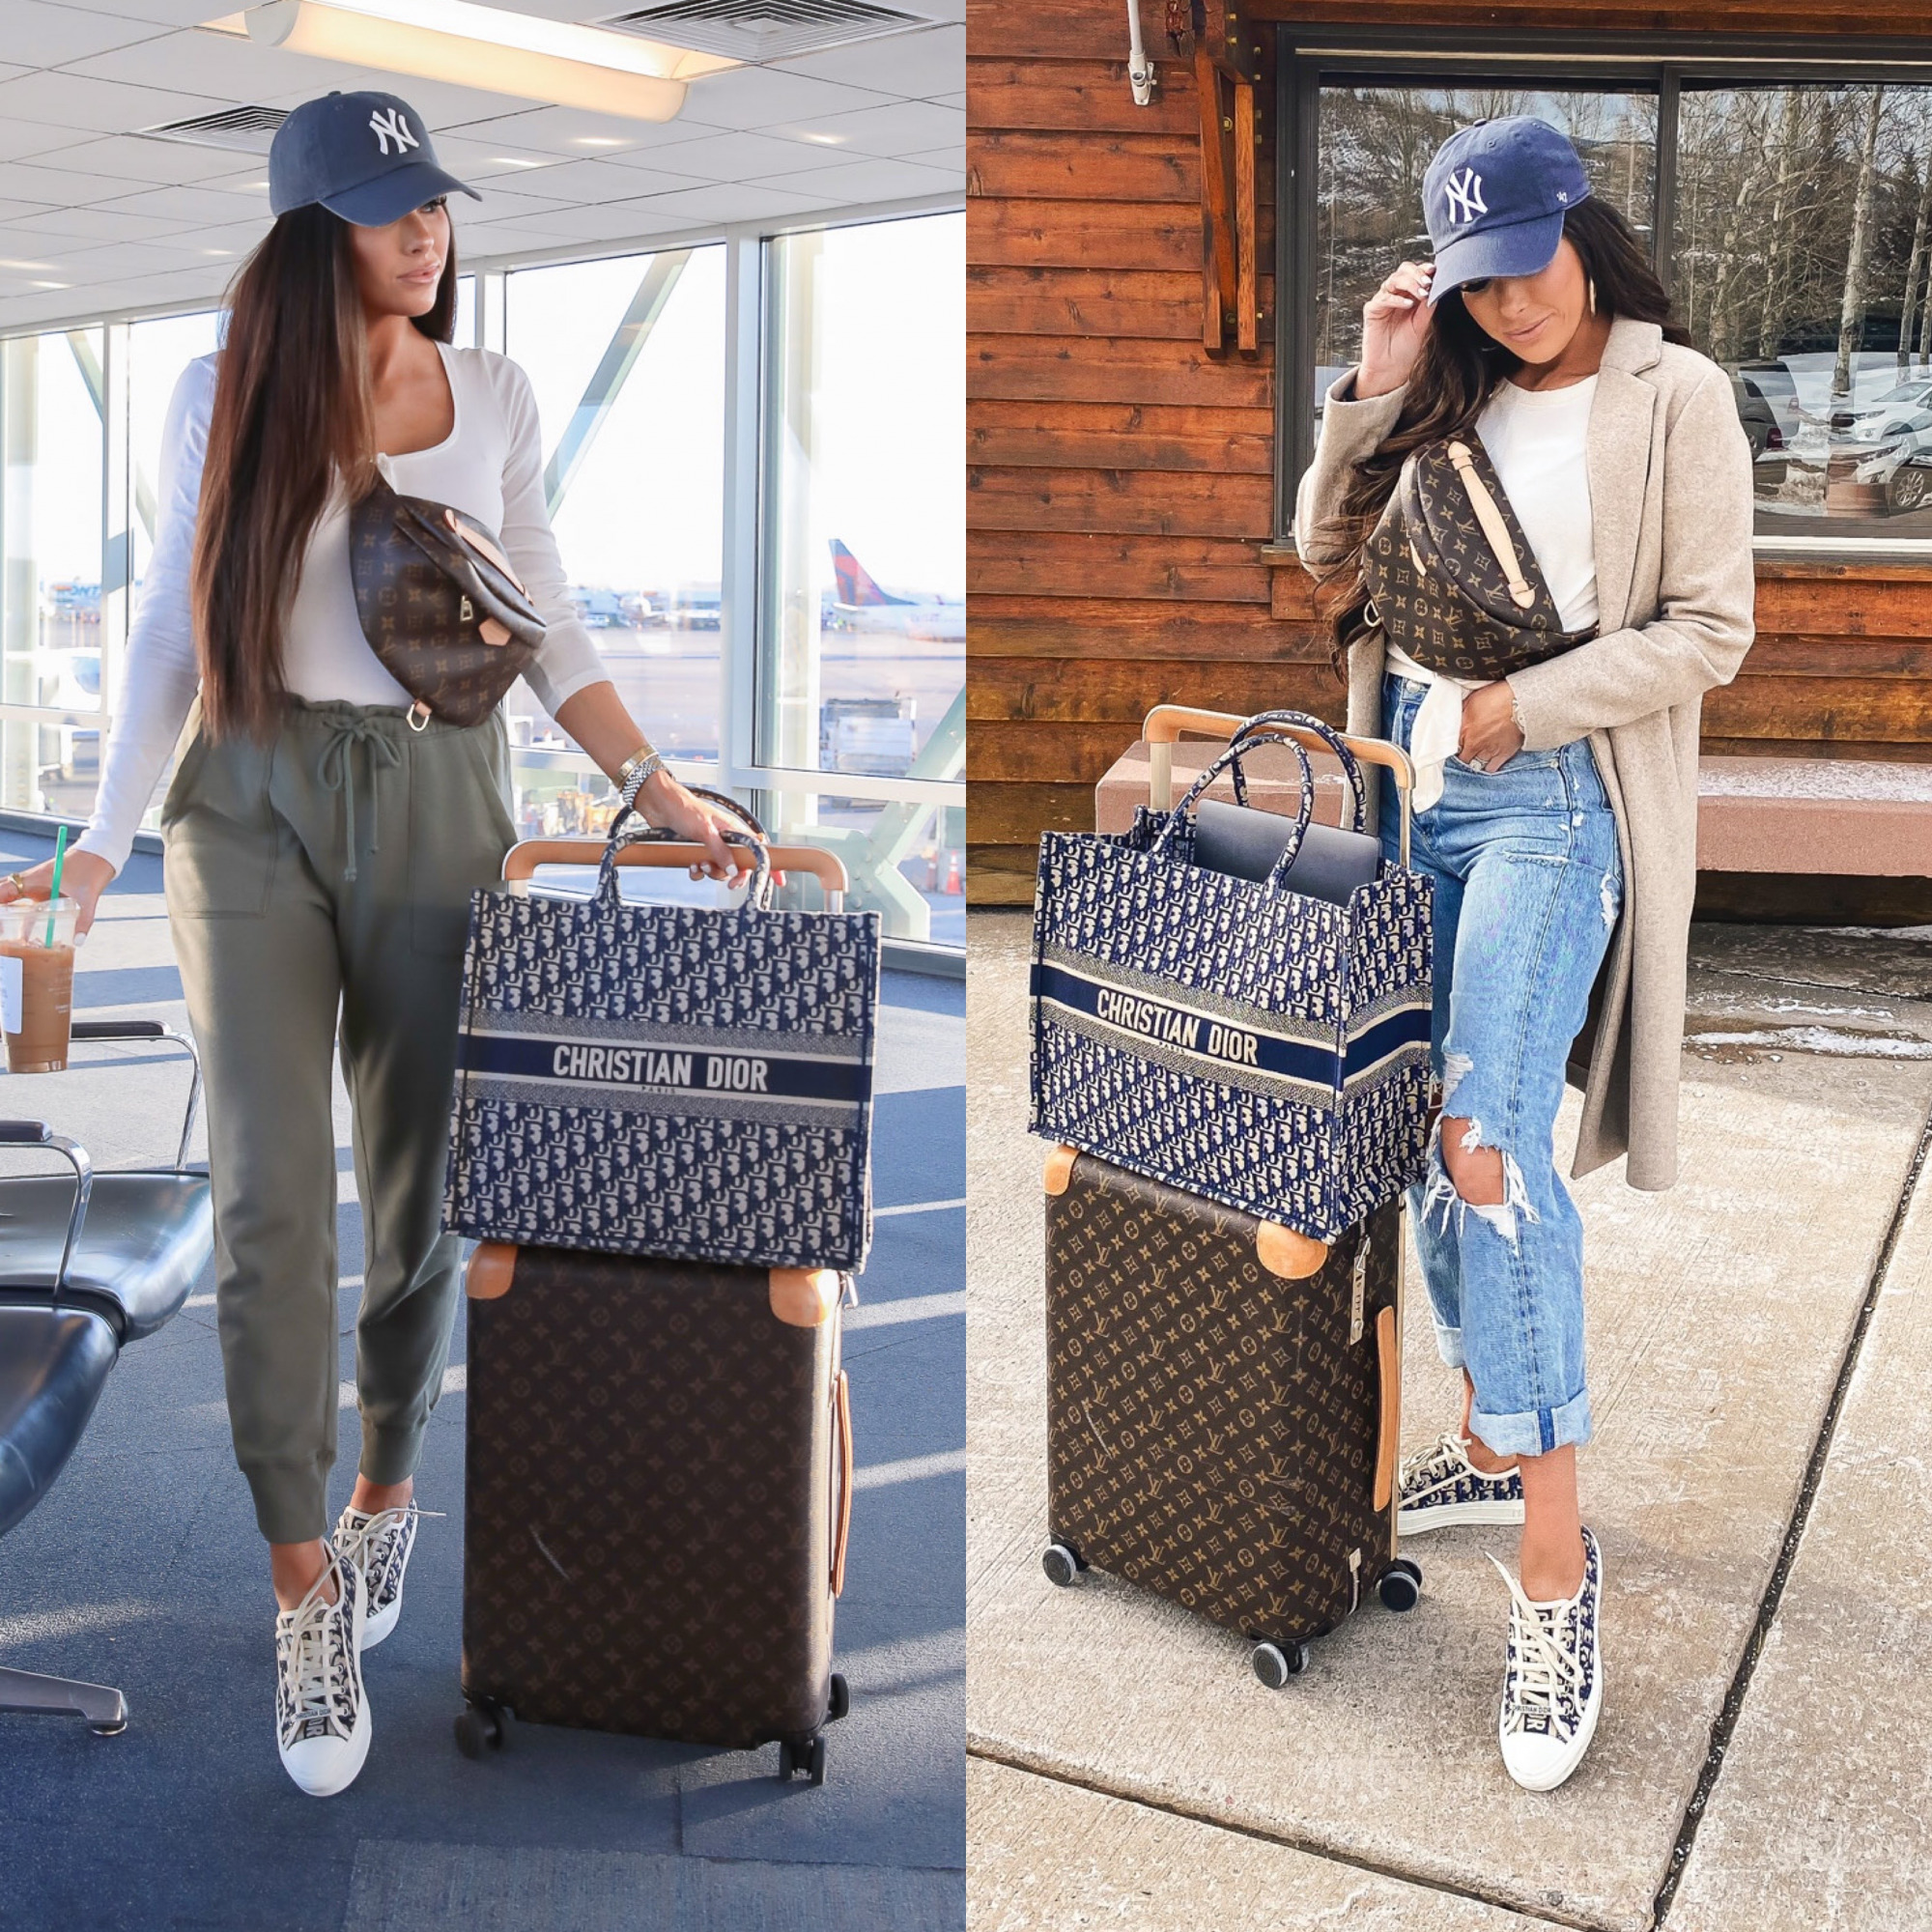 LTK day fall 2020, fall fashion outfit ideas pinterest 2020, dior oblique book tote, louis vuitton horizon carry on |  Sale Alert by popular US fashion blog, The Sweetest Thing: collage image of Emily Gemma wearing a Abercrombie and Fitch jeans, New York Yankee hat, white t-shirt, and pushing a Louis Vuitton suitcase and Christian Dior bag.